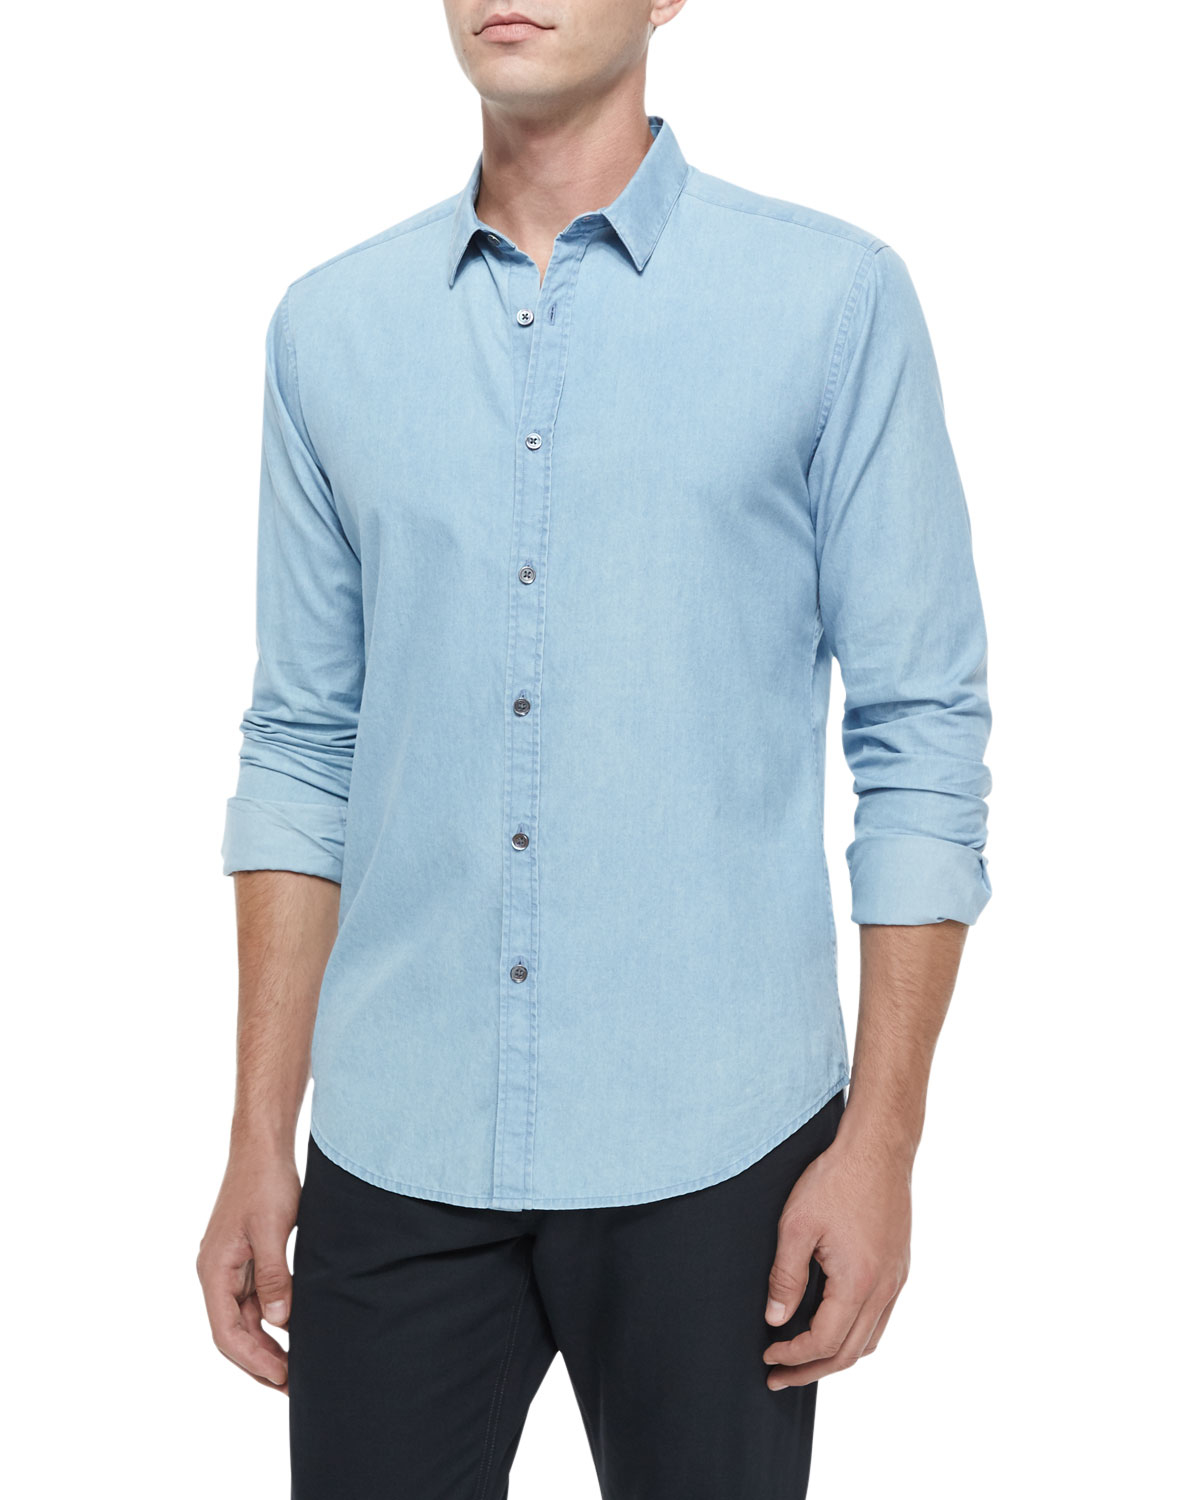 Theory chambray long sleeve woven shirt in blue for men lyst for Chambray long sleeve shirt